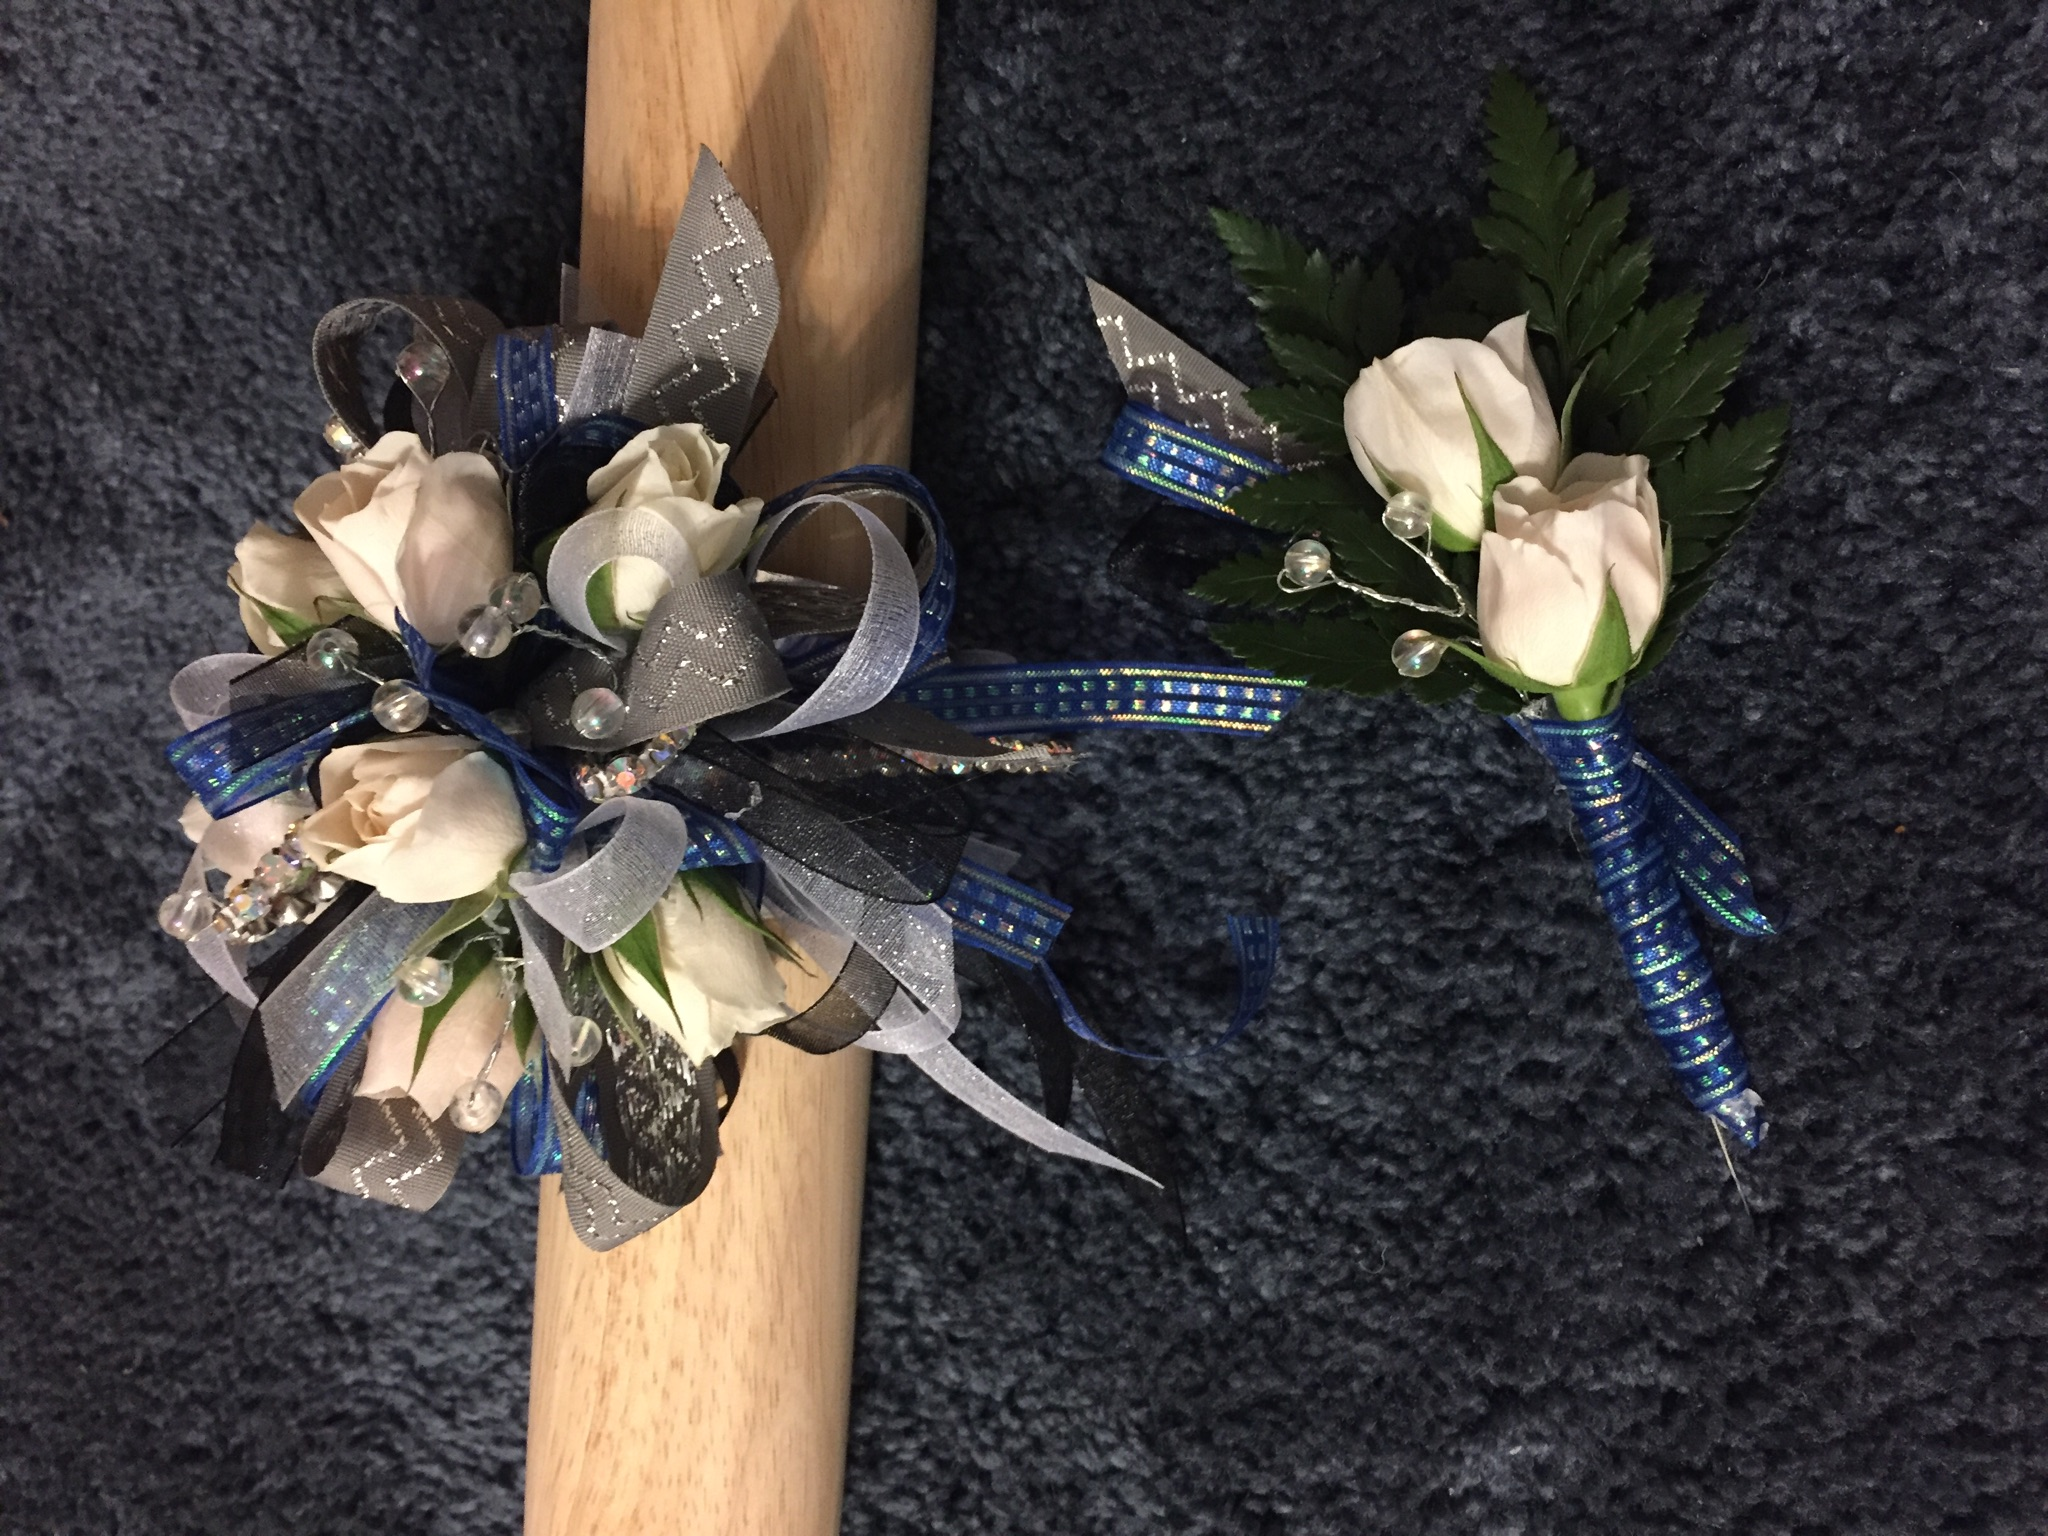 Prom corsage and boutonnière